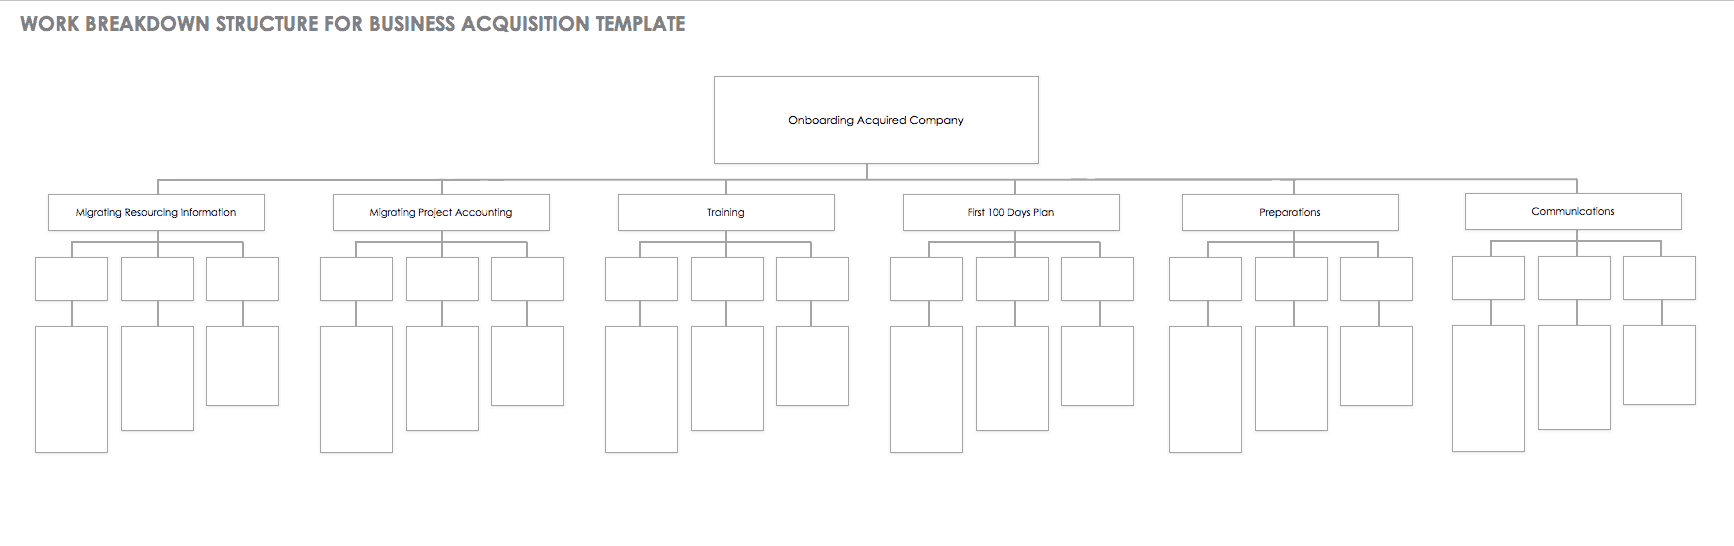 Free Work Breakdown Structure Templates | Smartsheet